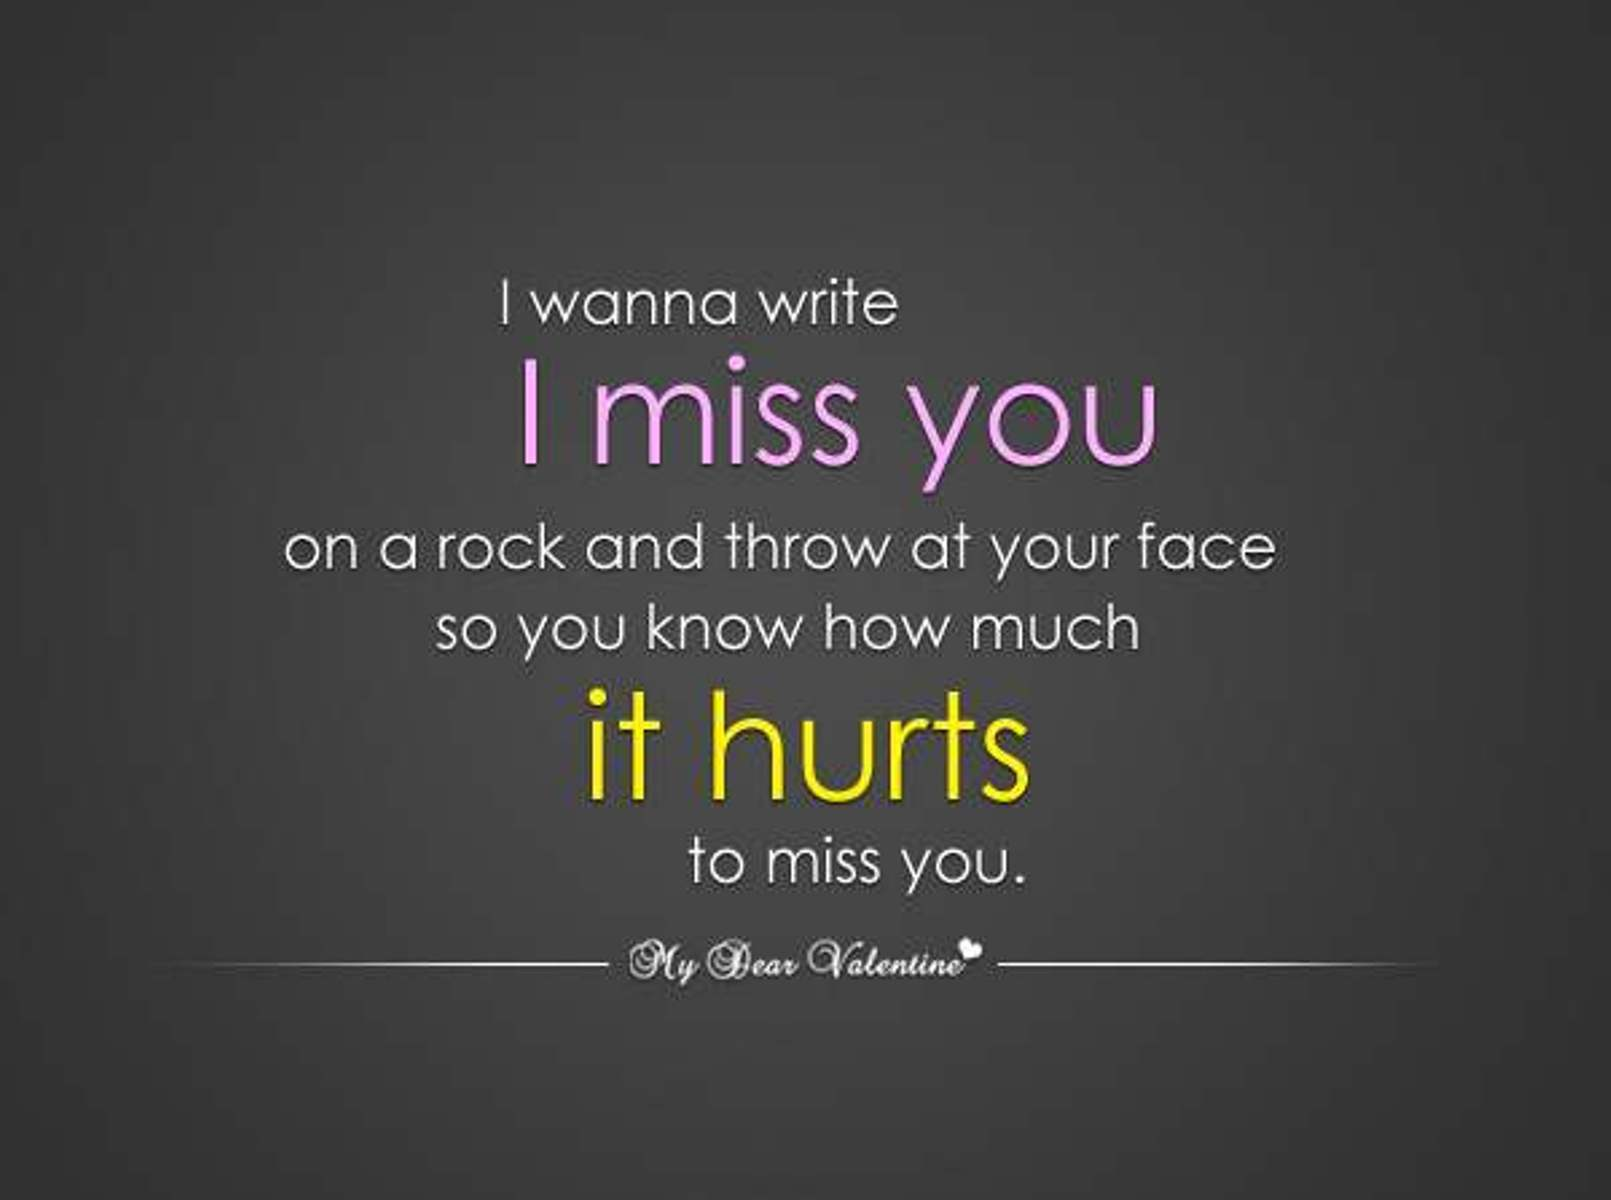 Teenage Love Quotes For Your Boyfriend : ... - Cute Quotes For Your Boyfriend To Express All The Love You Wish